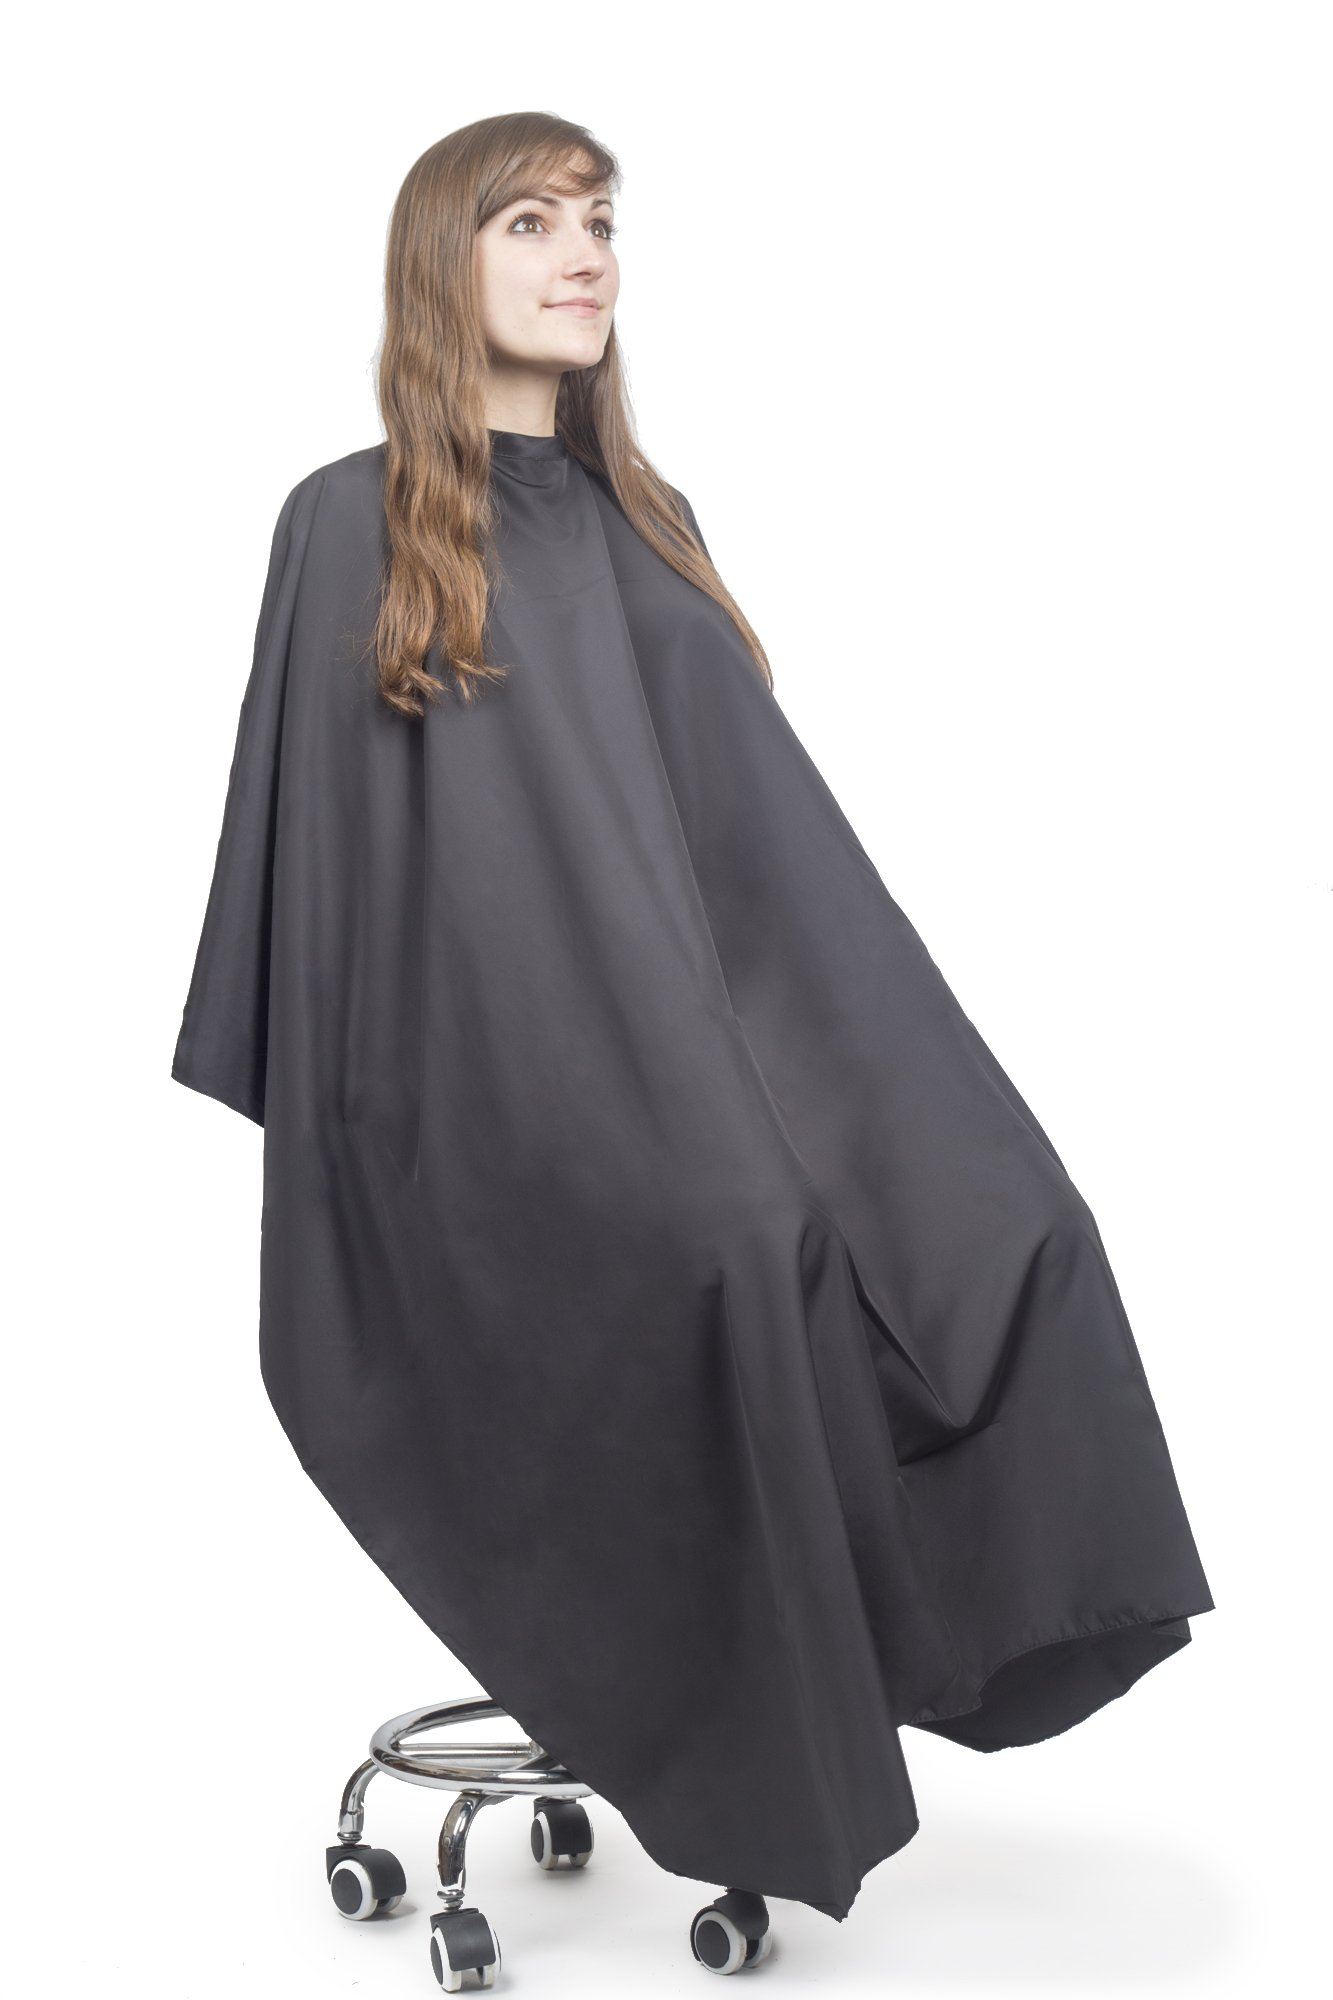 Hair Cutting Cape for Adults - Lightweight Water Resistant Salon Cape - Snap Closure - 60in x 57.5in - Haircut Cape - Hair Cape - Barber Cape for Men - Barber Capes by Salon Supply Co